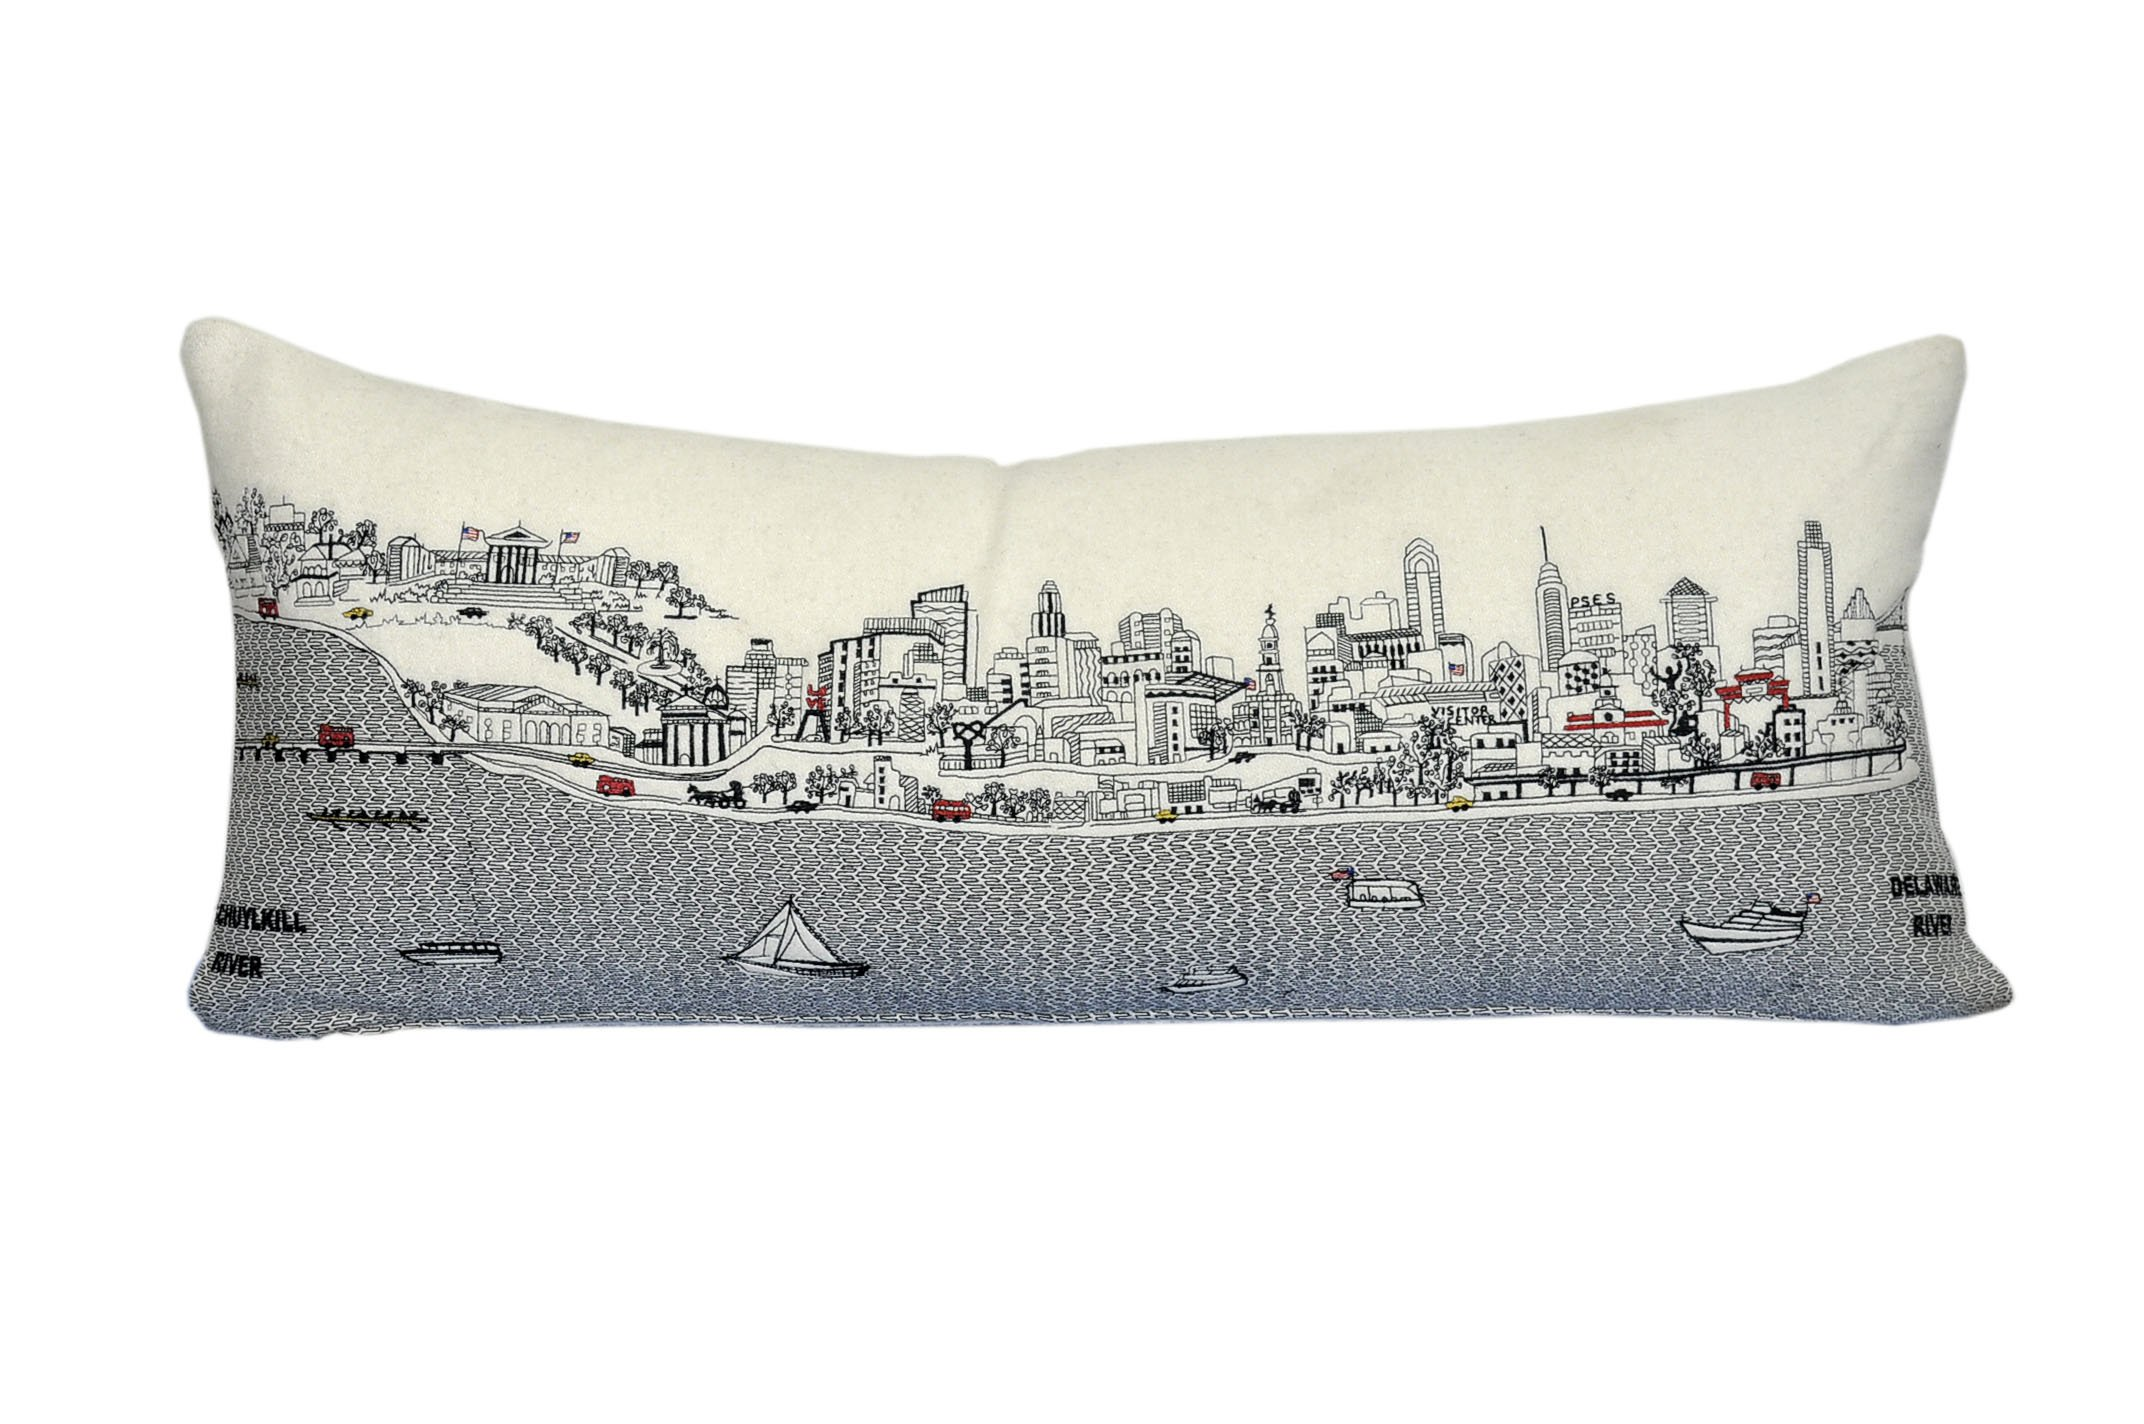 Beyond Cushions Polyester Throw Pillows Beyond Cushions Philadelphia Daytime Skyline Queen Size Embroidered Pillow 35 X 14 X 5 Inches Off-White Model # PHI-DAY-QUN